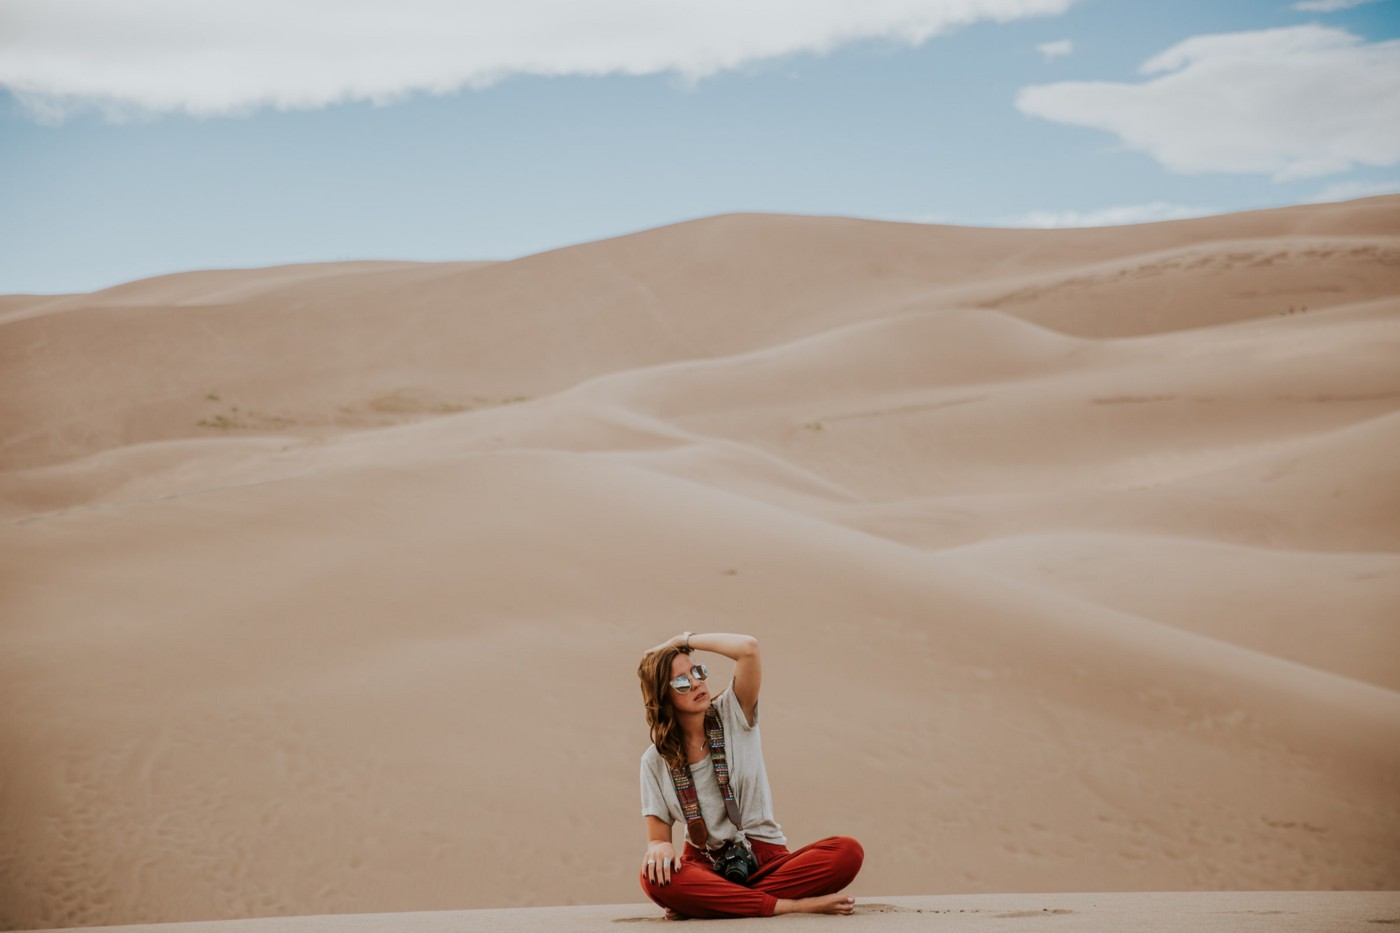 A person sitting in the sand.